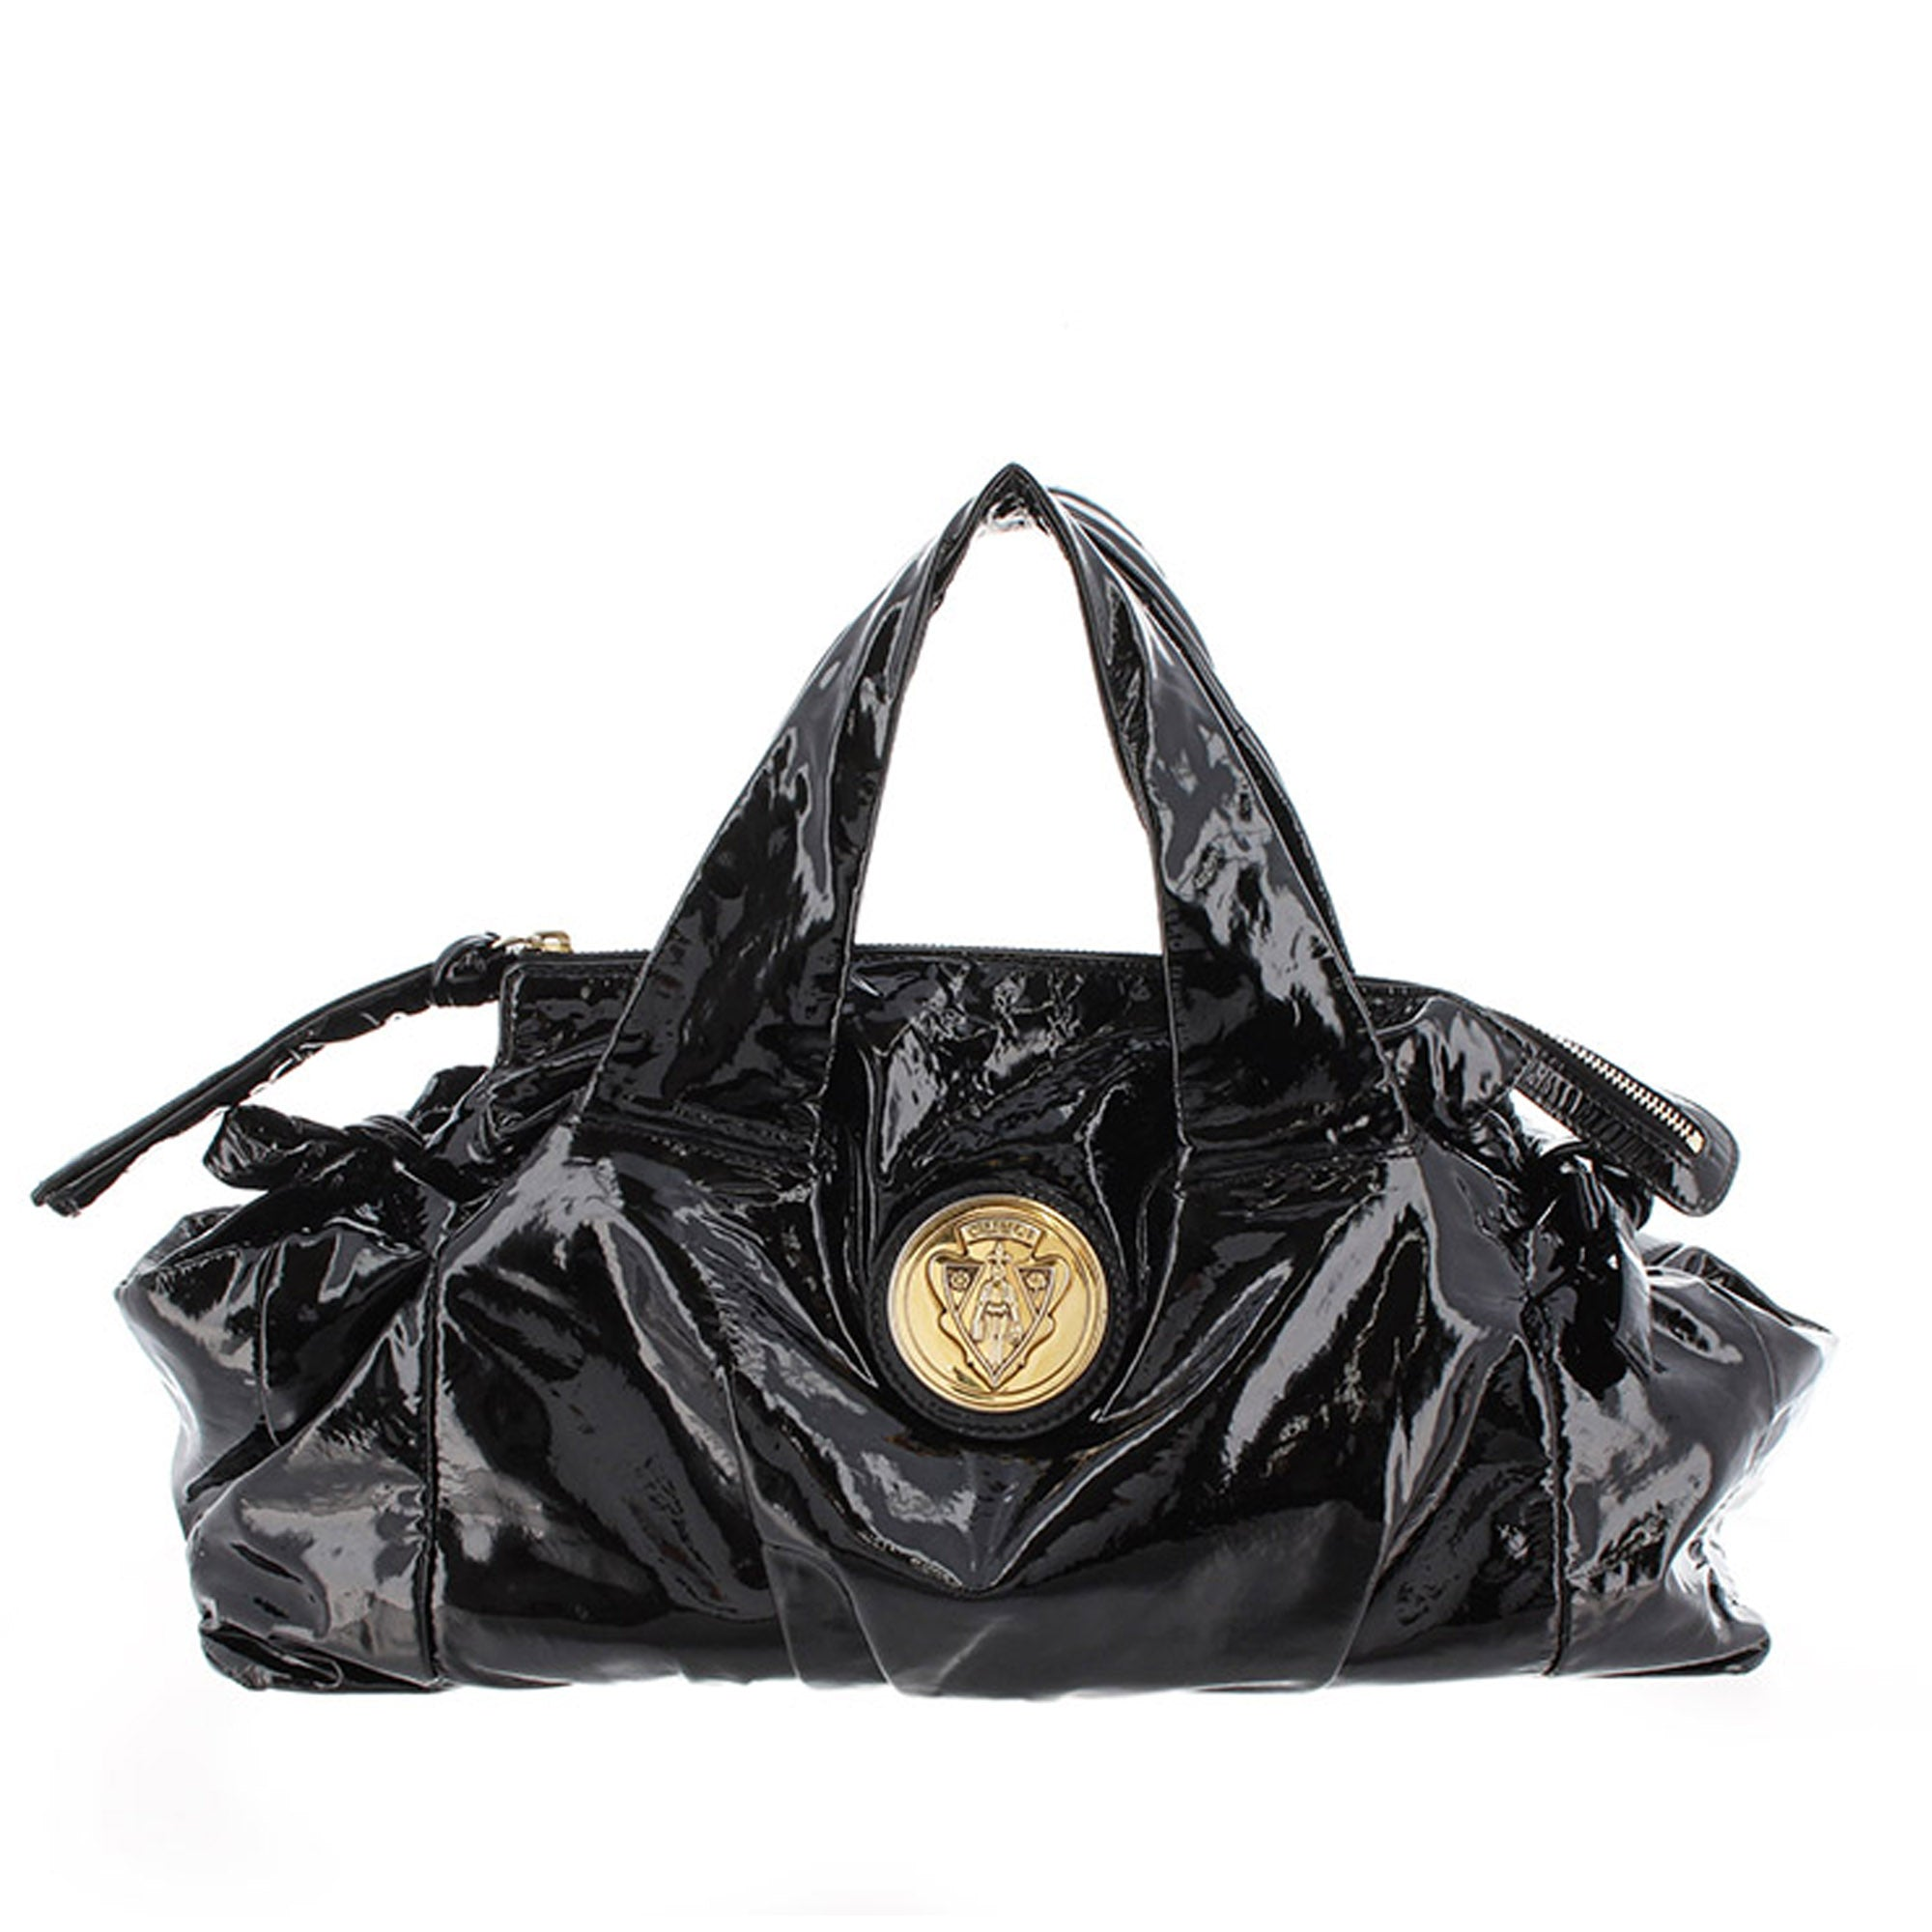 Gucci Black Hysteria Patent Leather Handbag